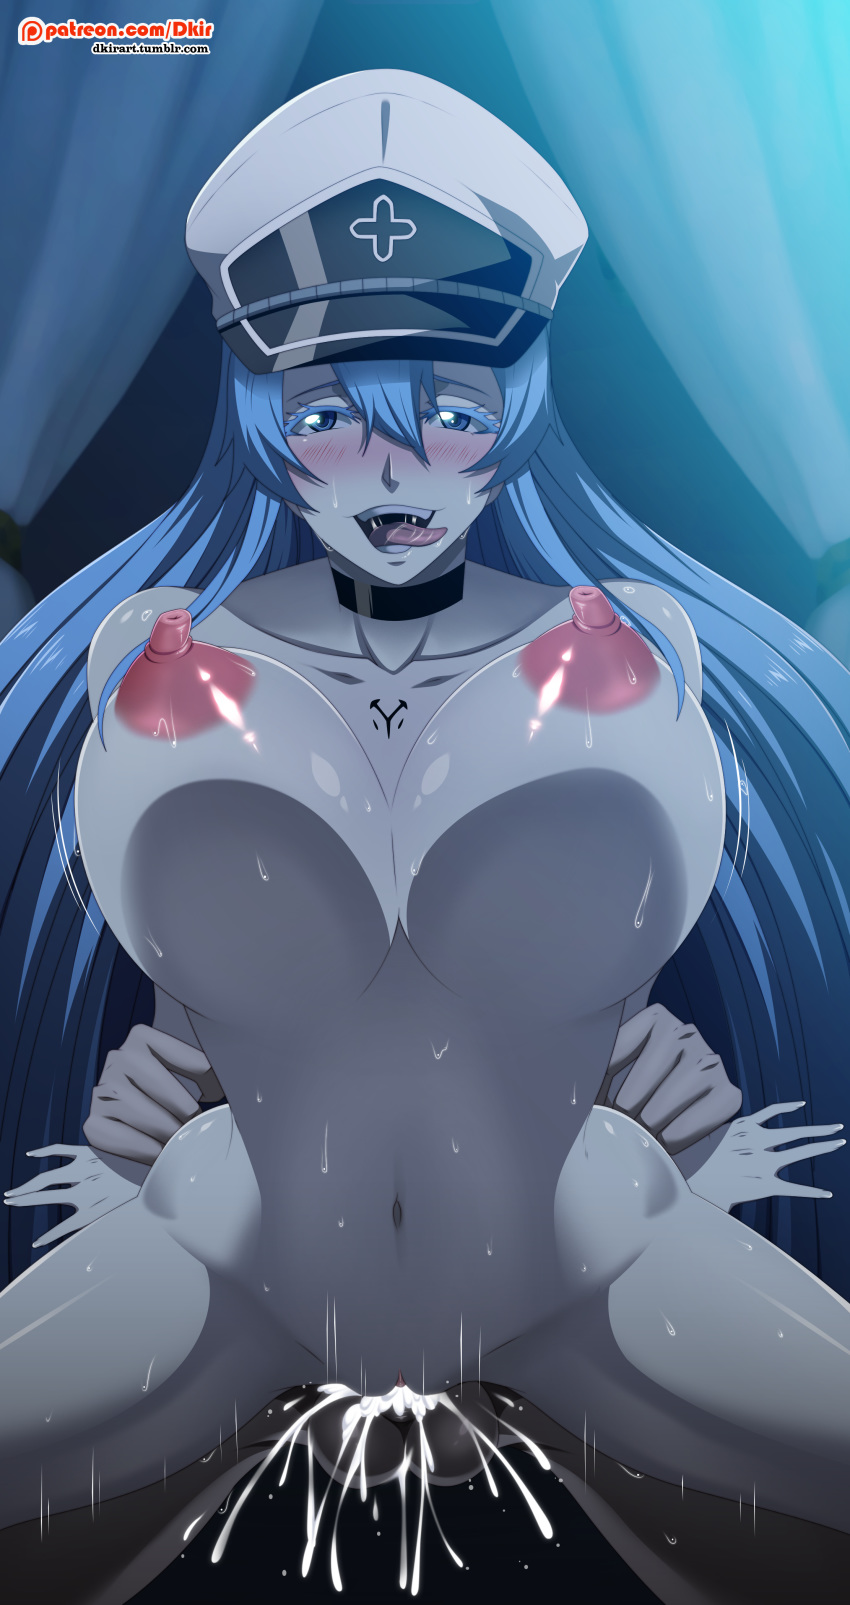 kill akame ga leone from Zell23 forest of blue skin